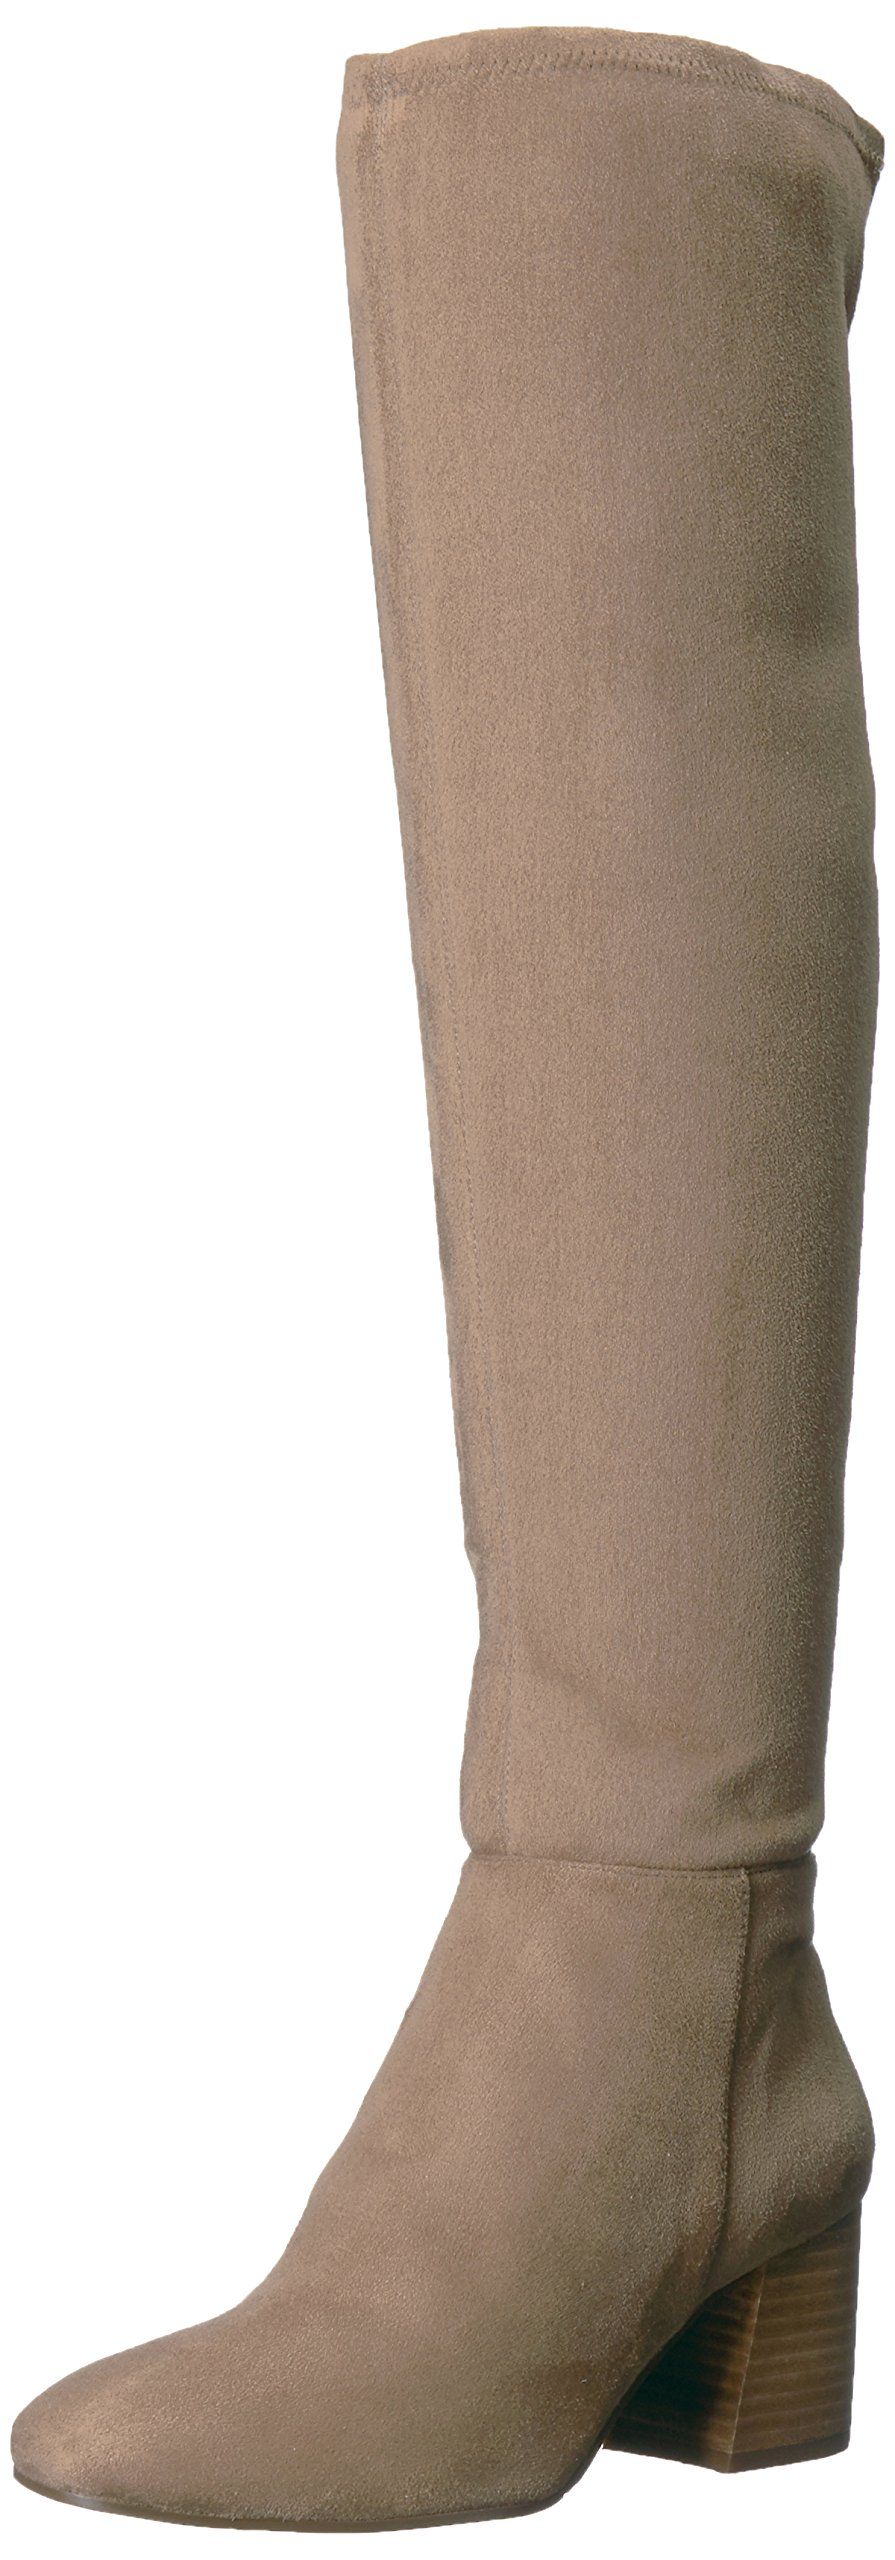 Vince Camuto Women's Kantha Over The Knee Boot, Foxy, 8 Medium US